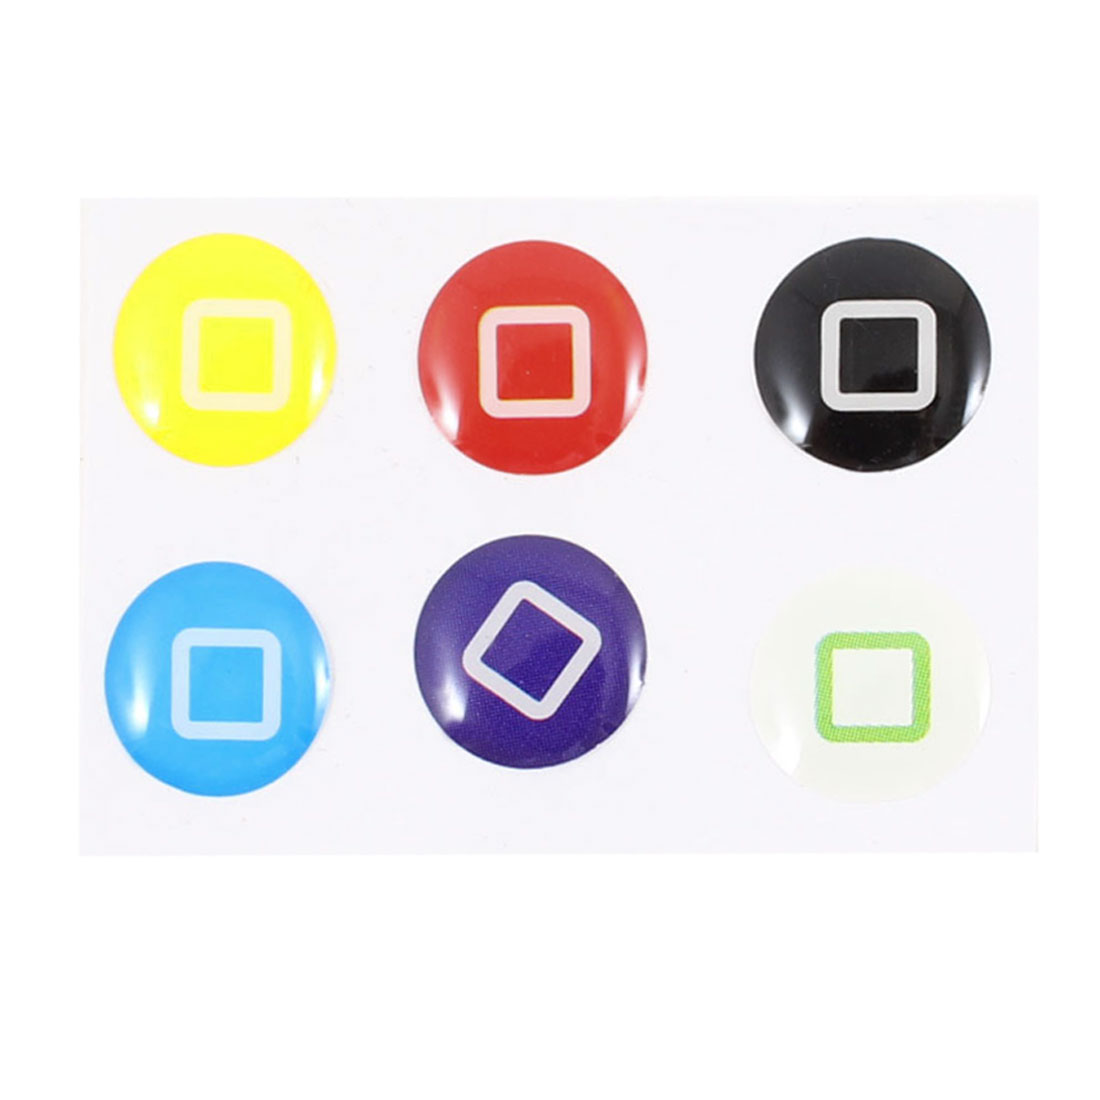 6 x Assorted Color Square Printed Home Button Sticker